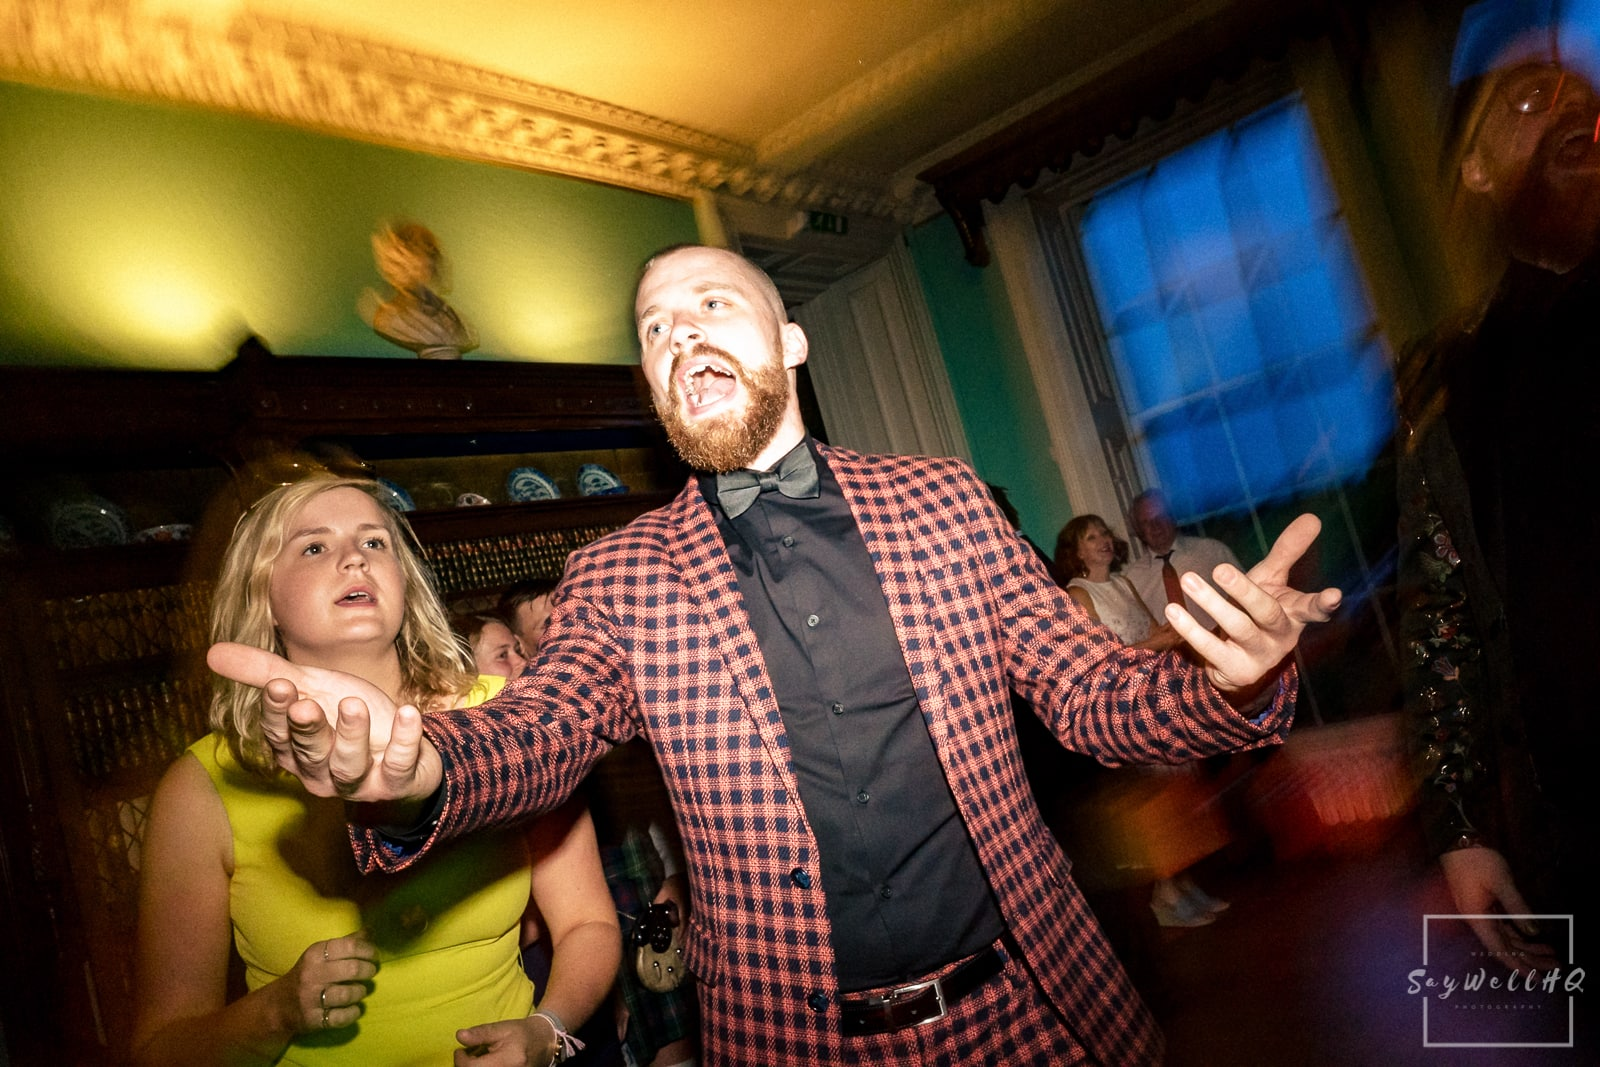 Prestwold Hall Wedding Photography - wedding first dance and live band at Prestwold Hall